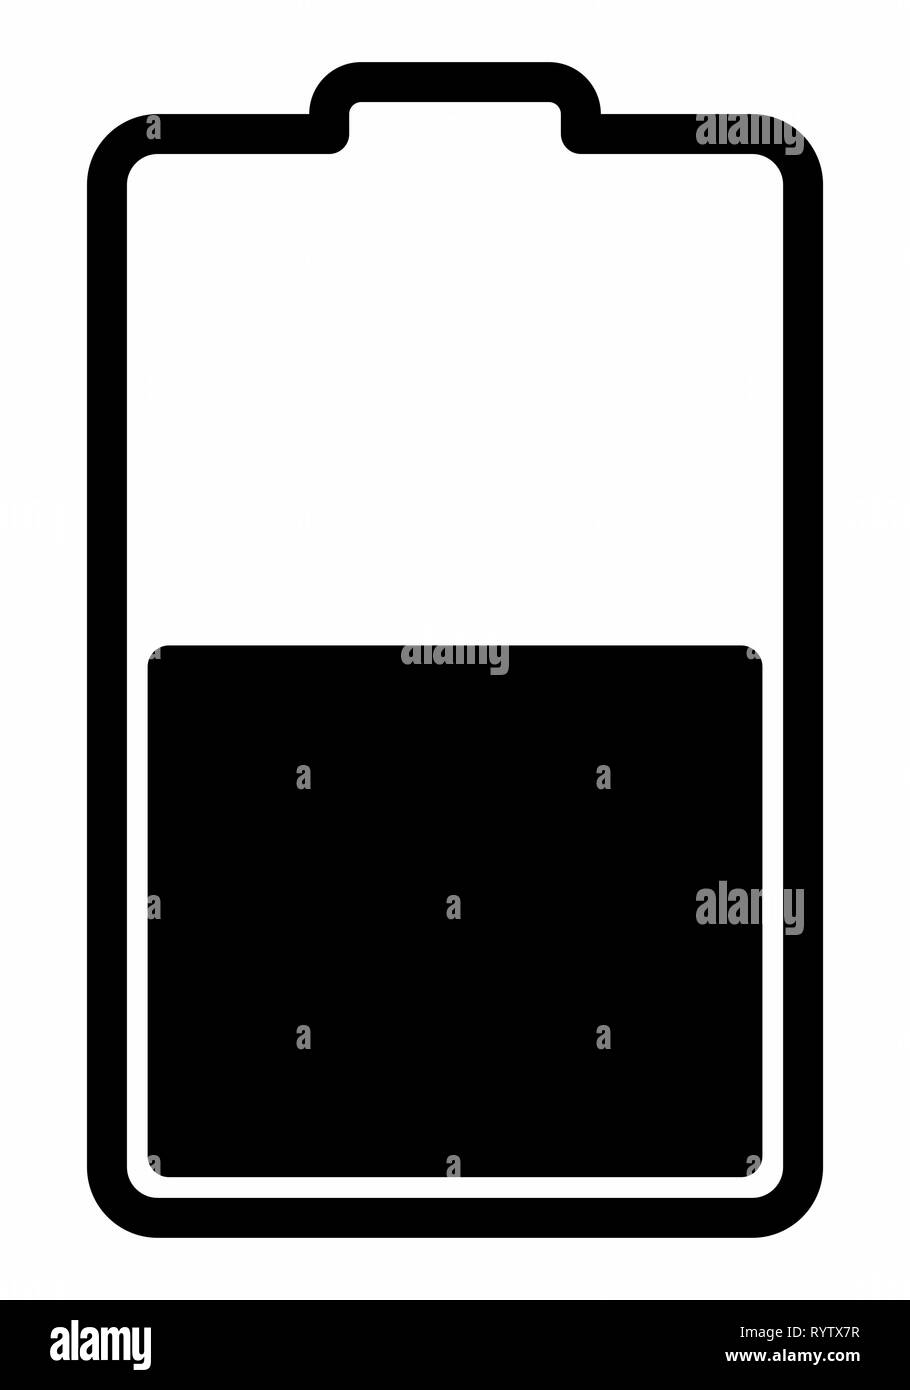 Battery Charging Icon - Stock Vector